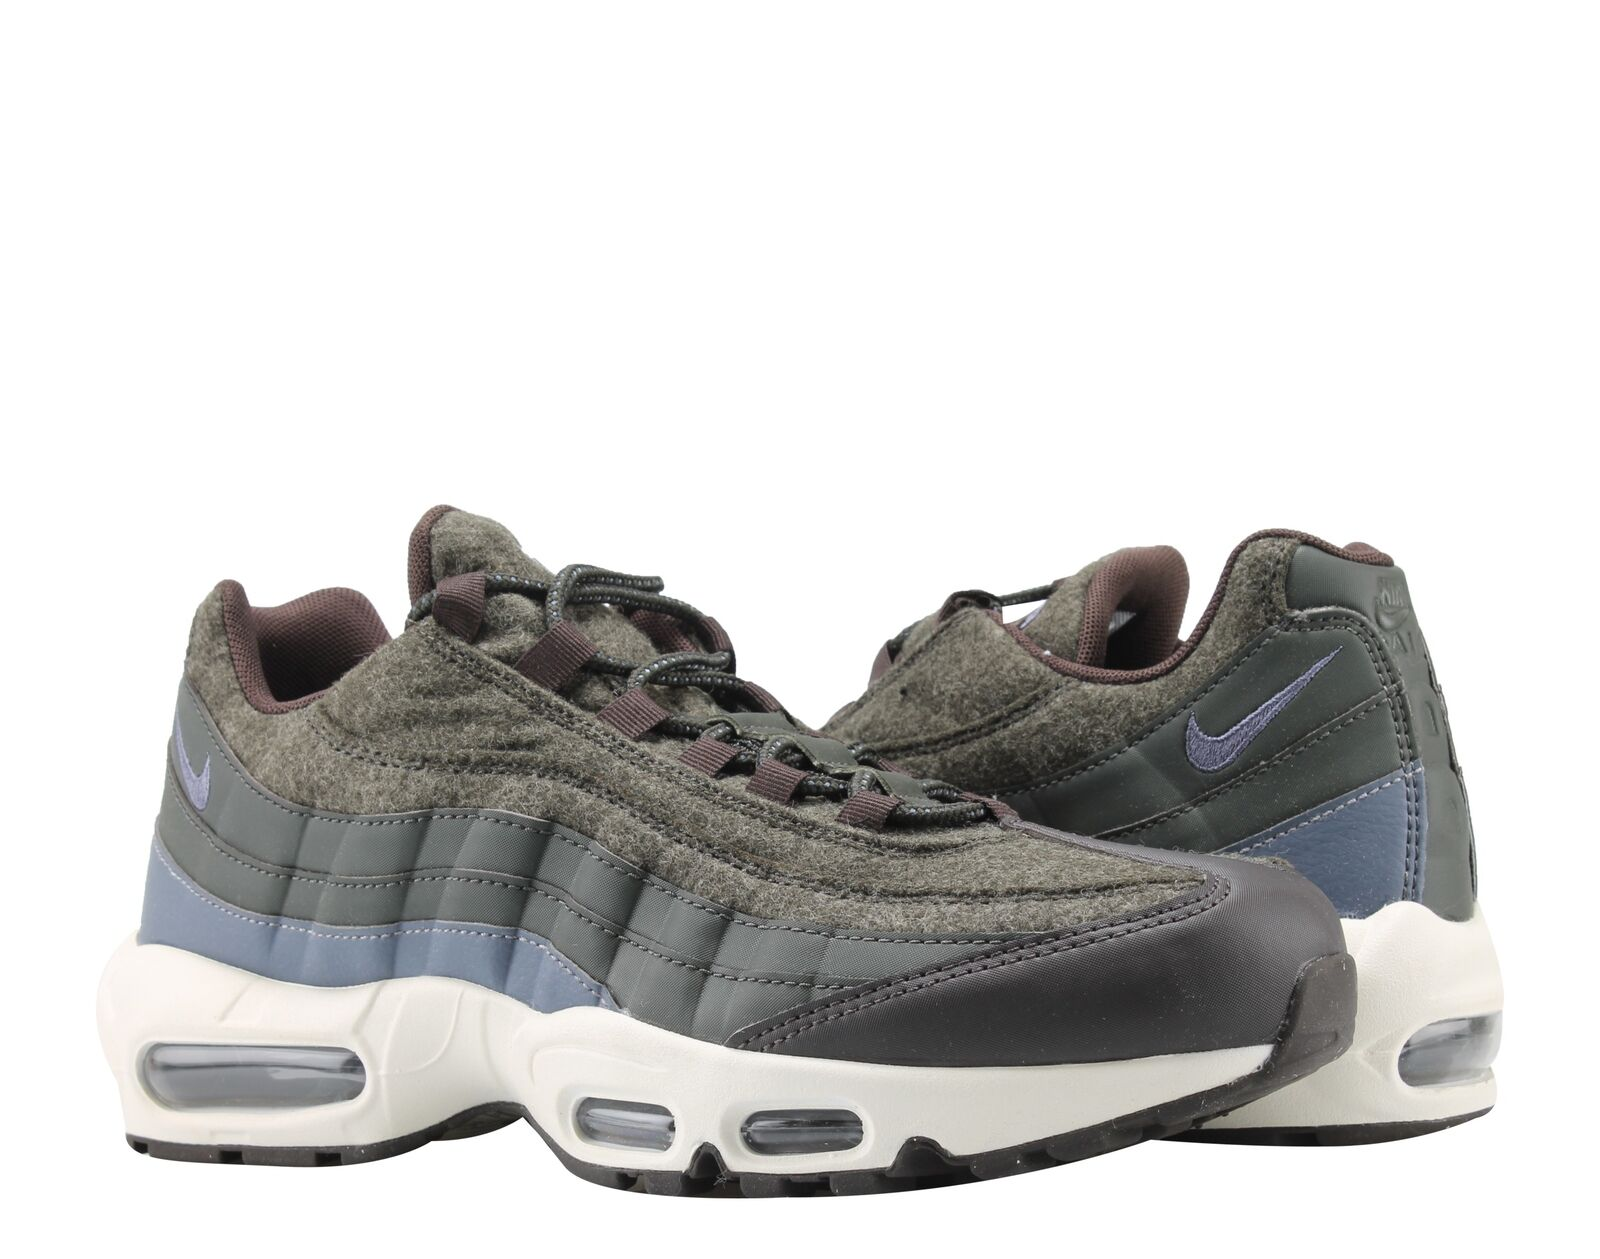 Nike Air Max 95 Premium SequoiaLight Carbon Men's Running Shoes 538416 300